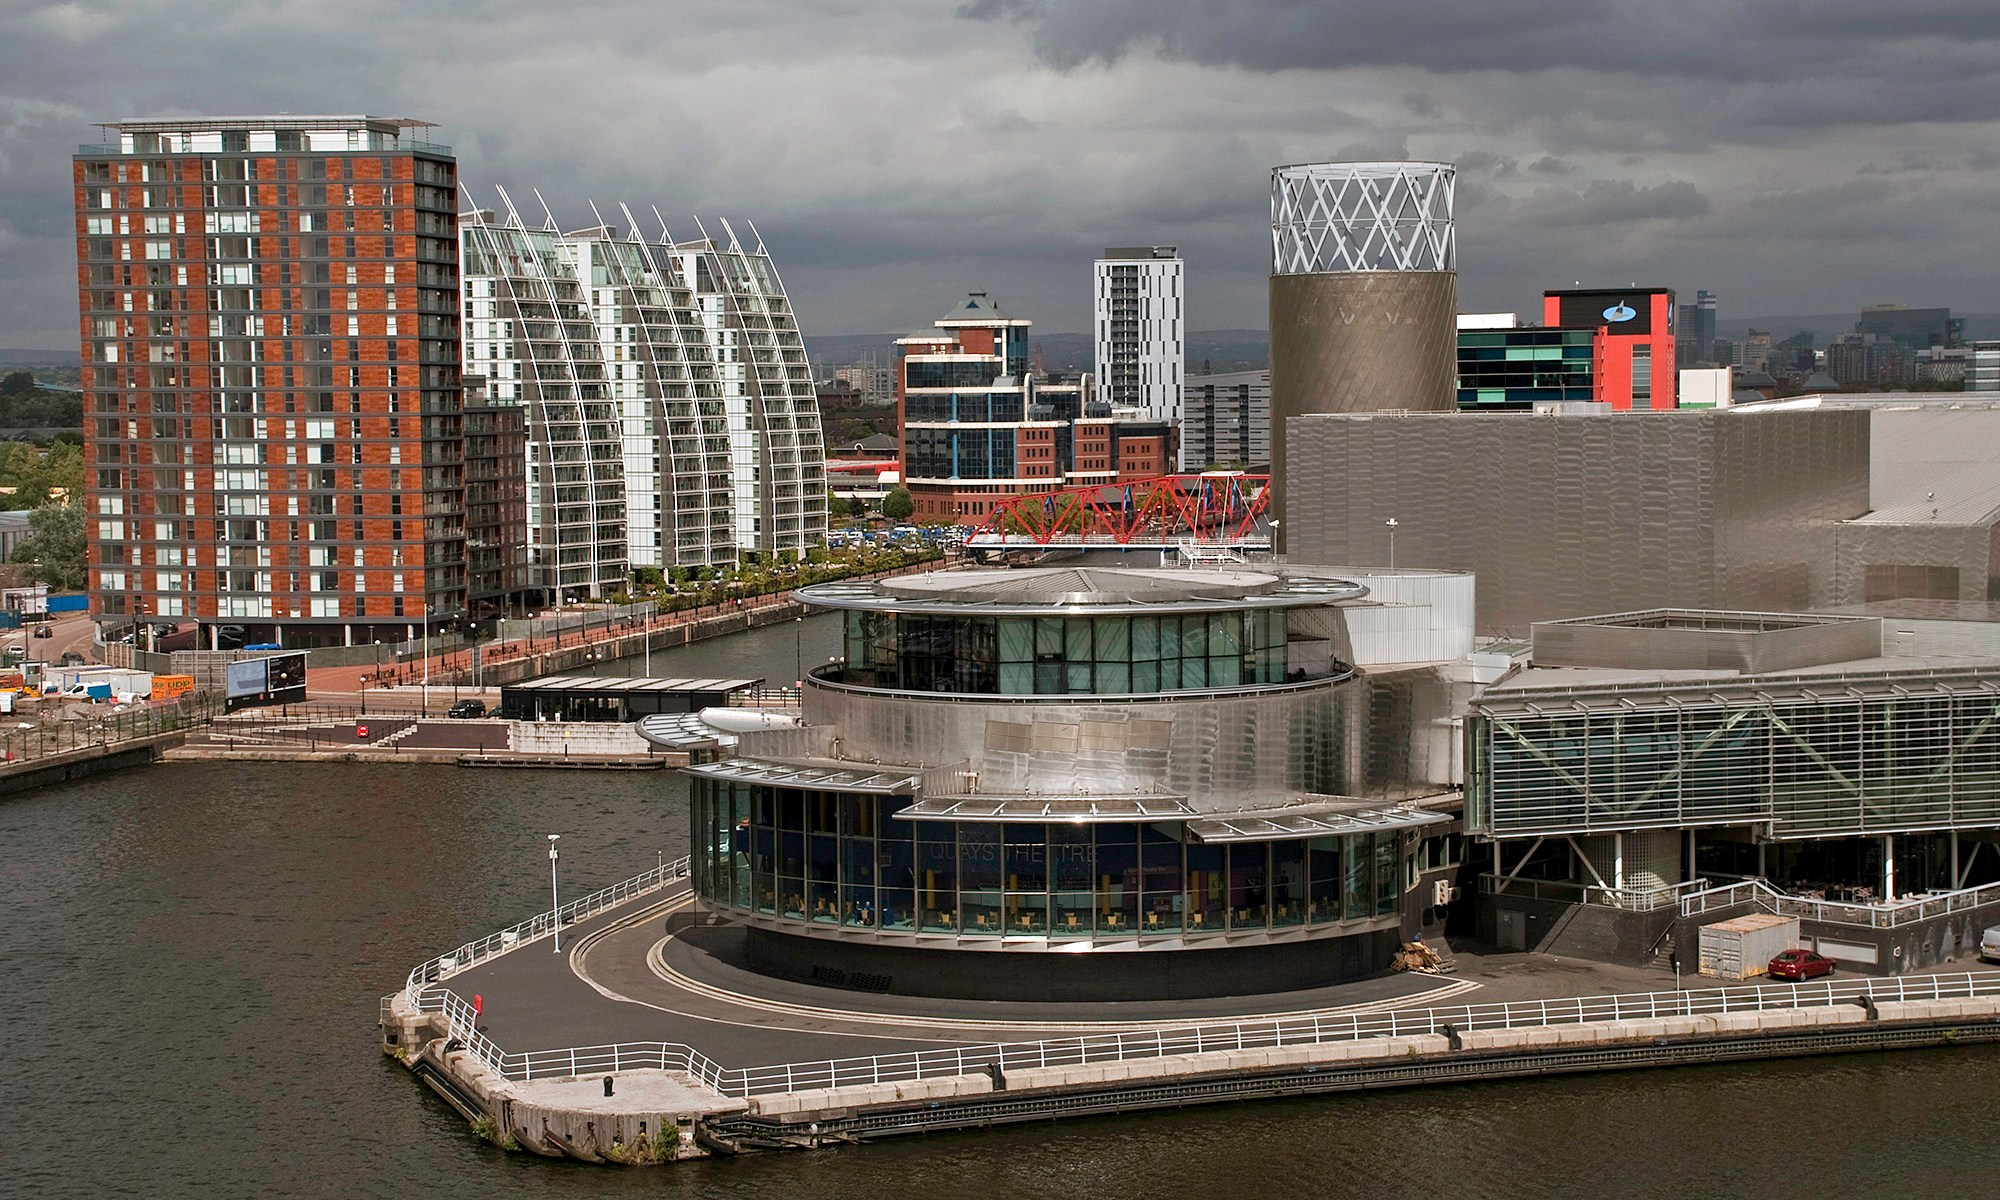 Lowry Theatre at Salford Quays